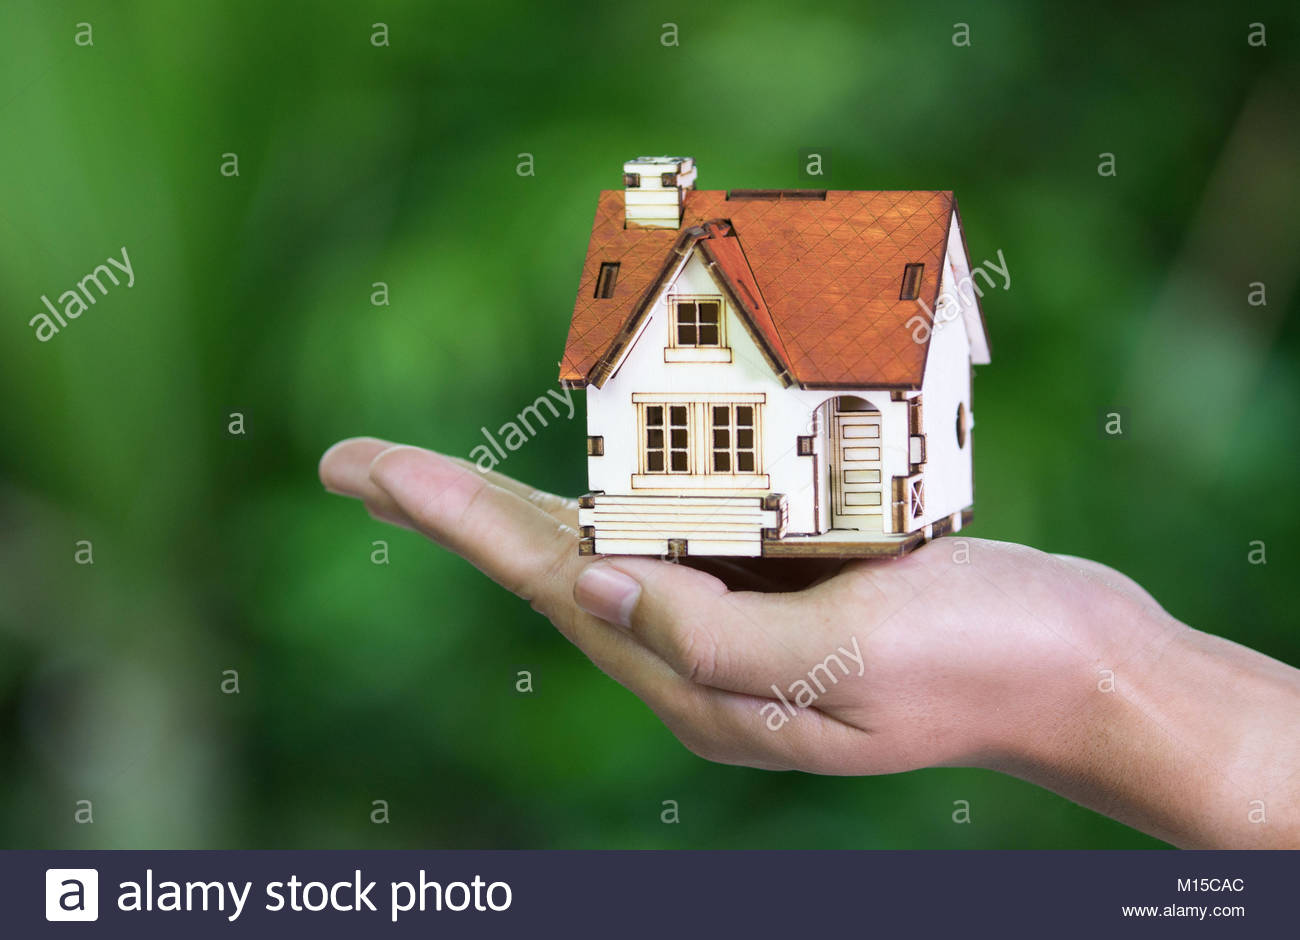 hands holding house. Real estate and property concept. - Stock Image